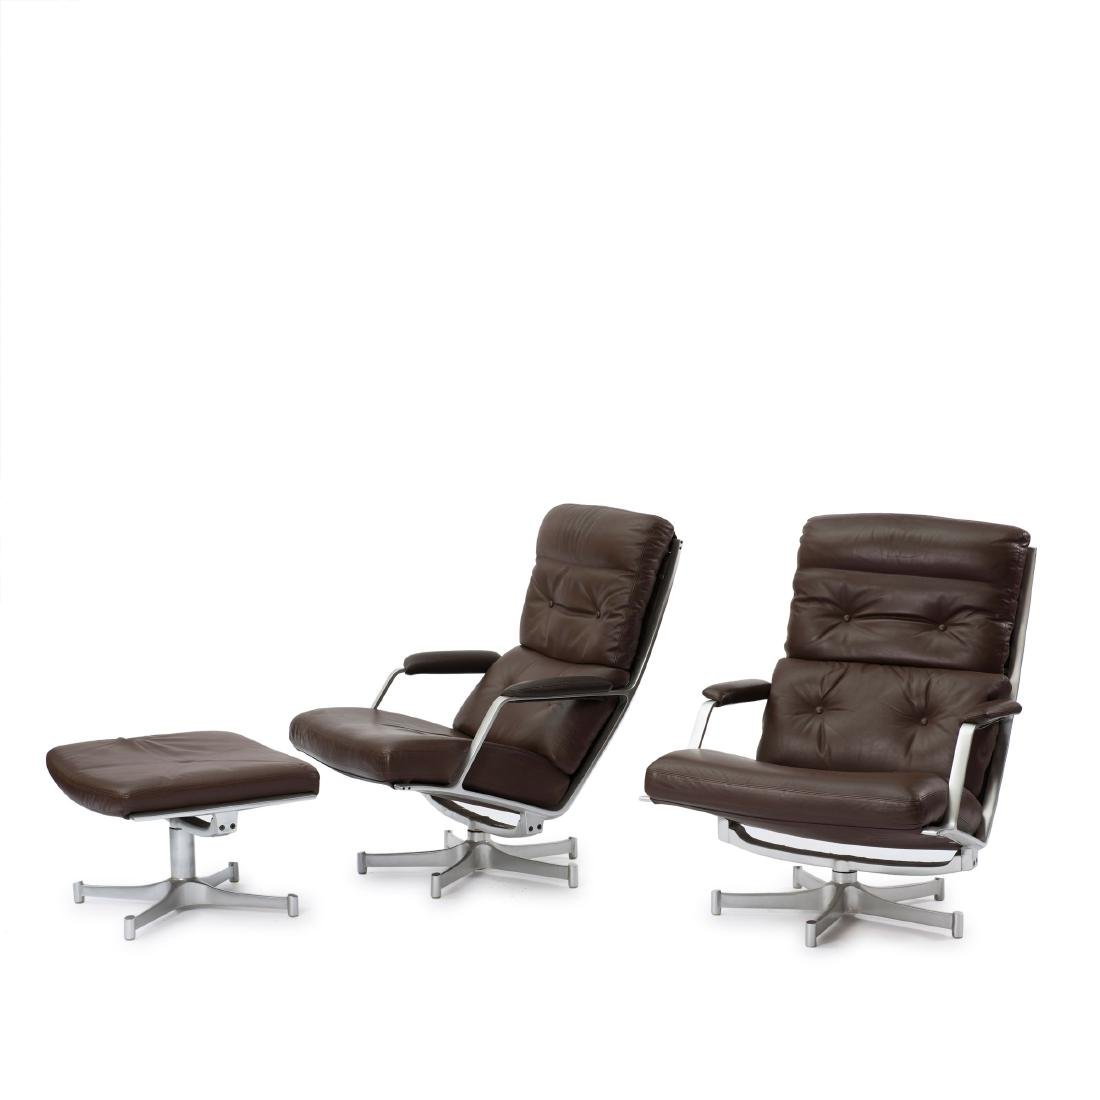 Two 'FK 85' easy chairs and one ottoman, c. 1968